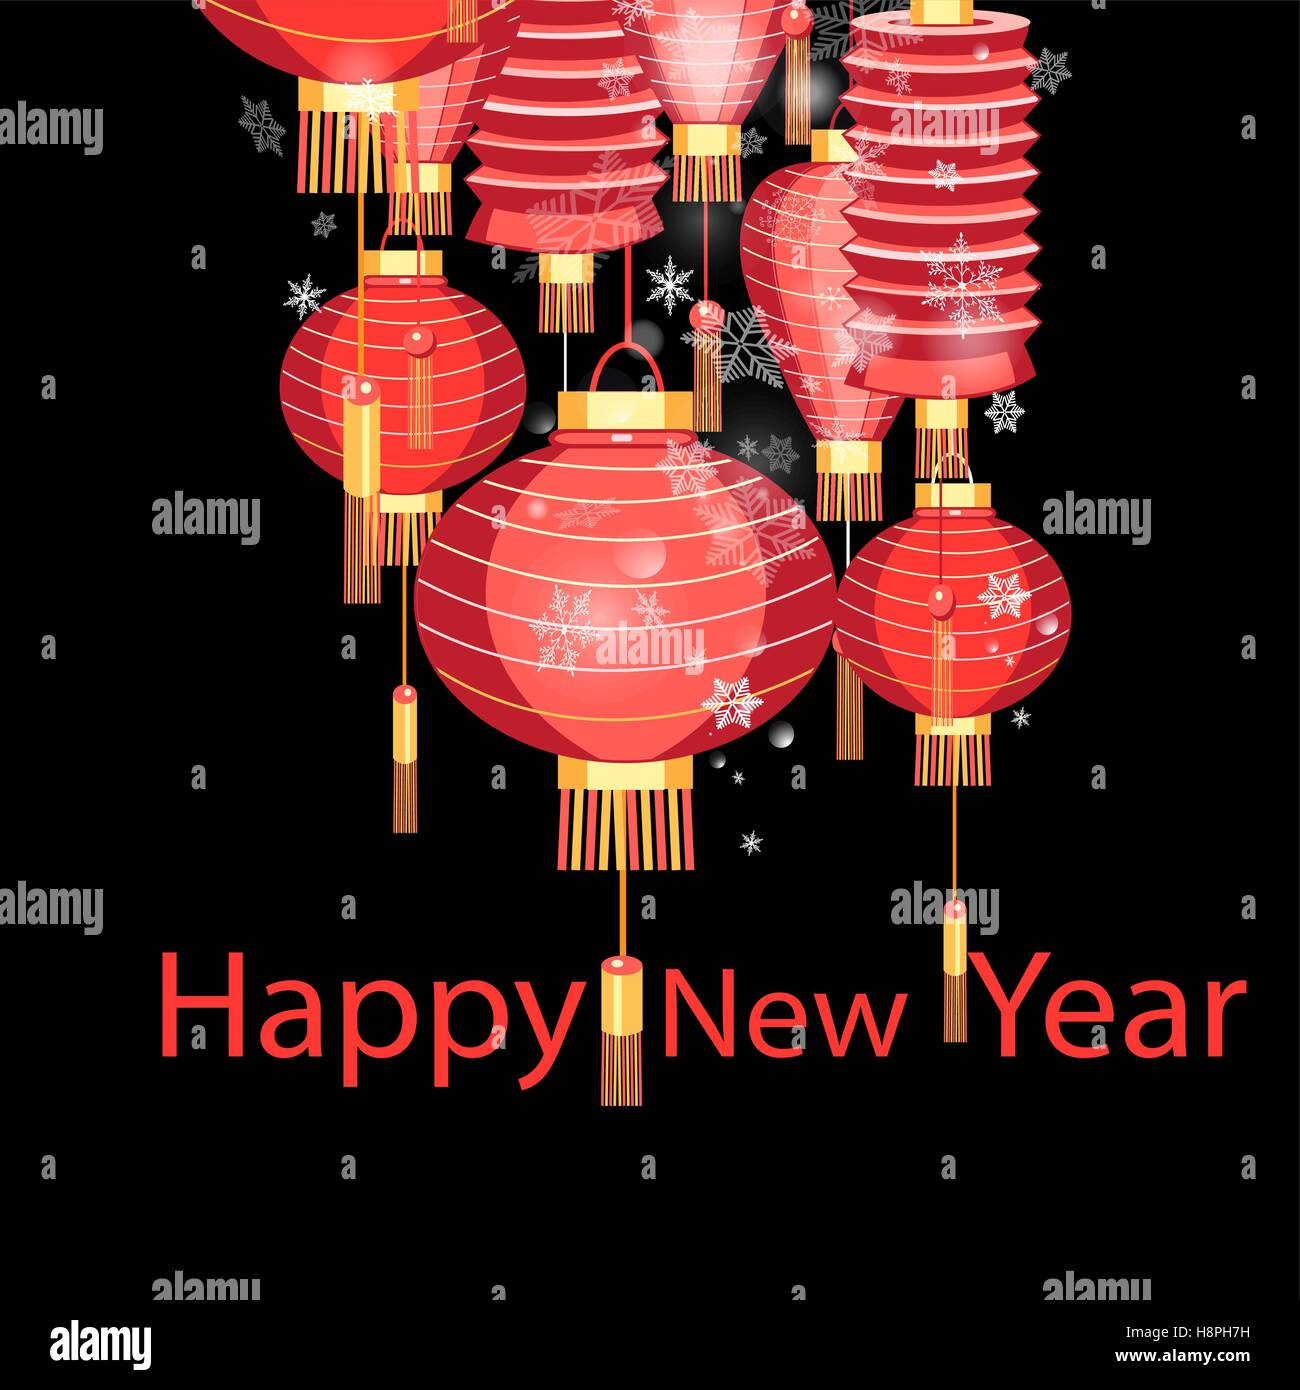 Greeting Christmas Card With Red Chinese Lanterns Stock Vector Art